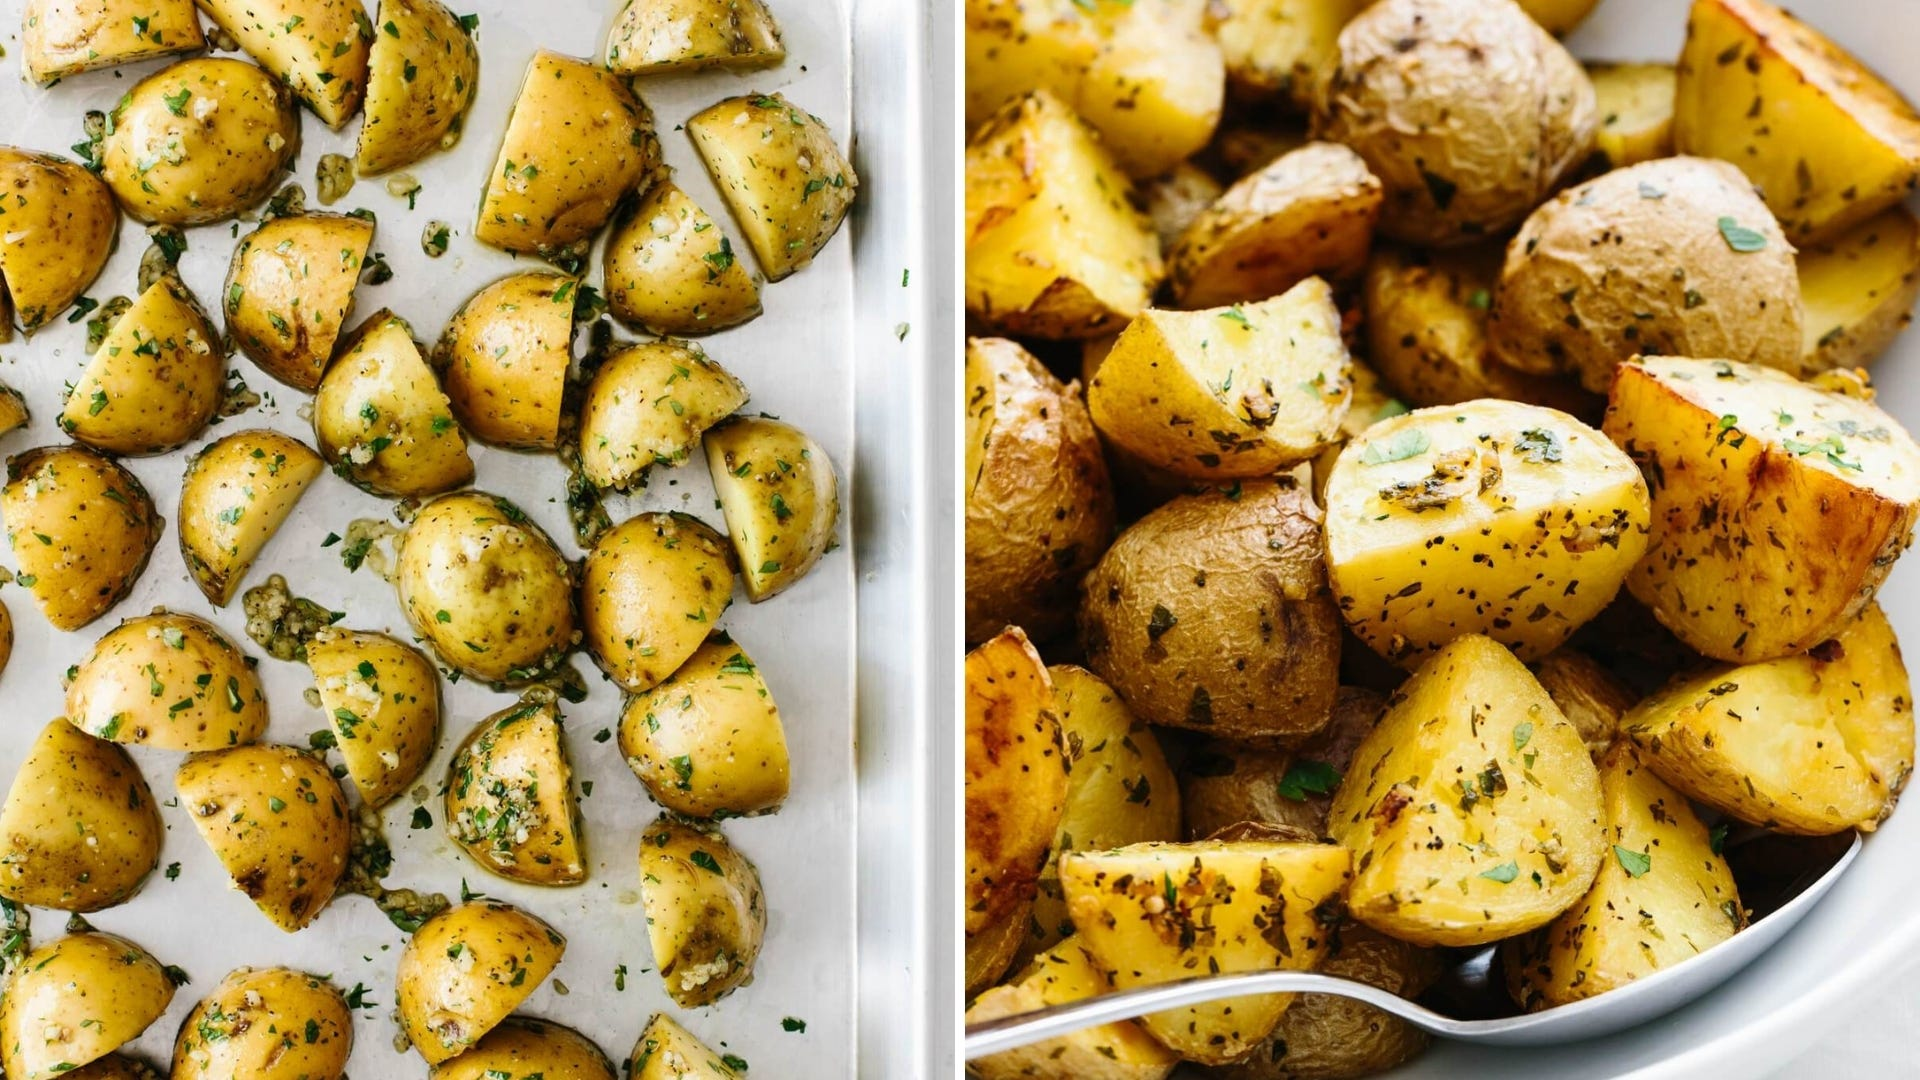 Roasted potatoes with herbs sit on a pan and in a bowl.